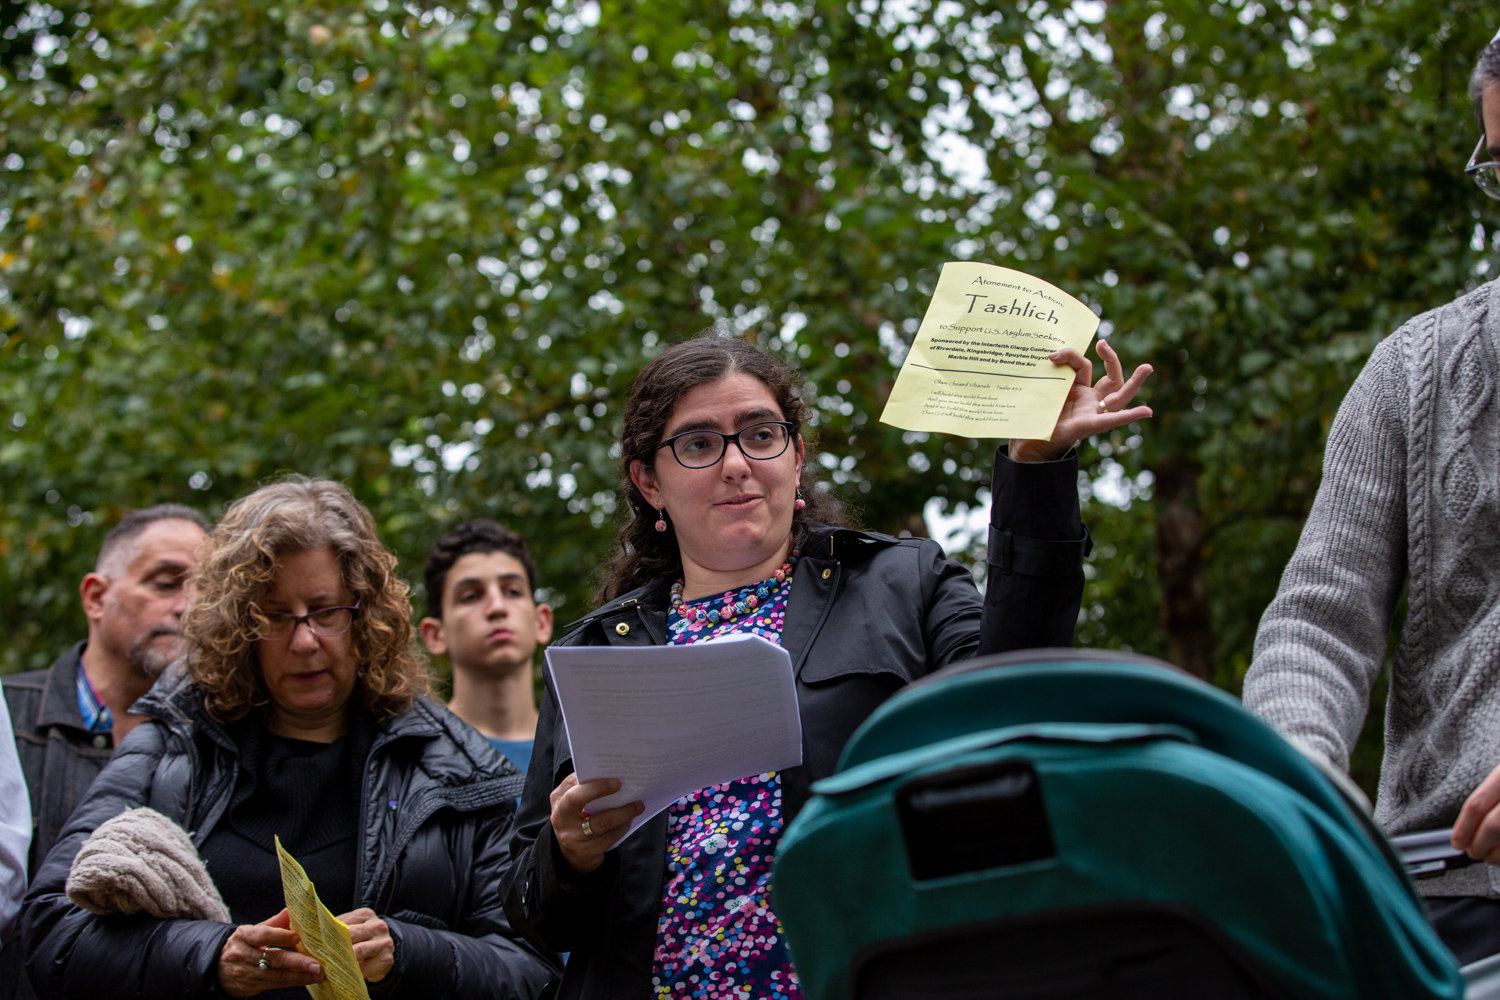 Rabbi Katie Greenberg talks about the importance of the Tashlich ceremony near Delafield Pond. Greenberg and other faith leaders gathered near the pond to call attention to the plight of asylum seekers.